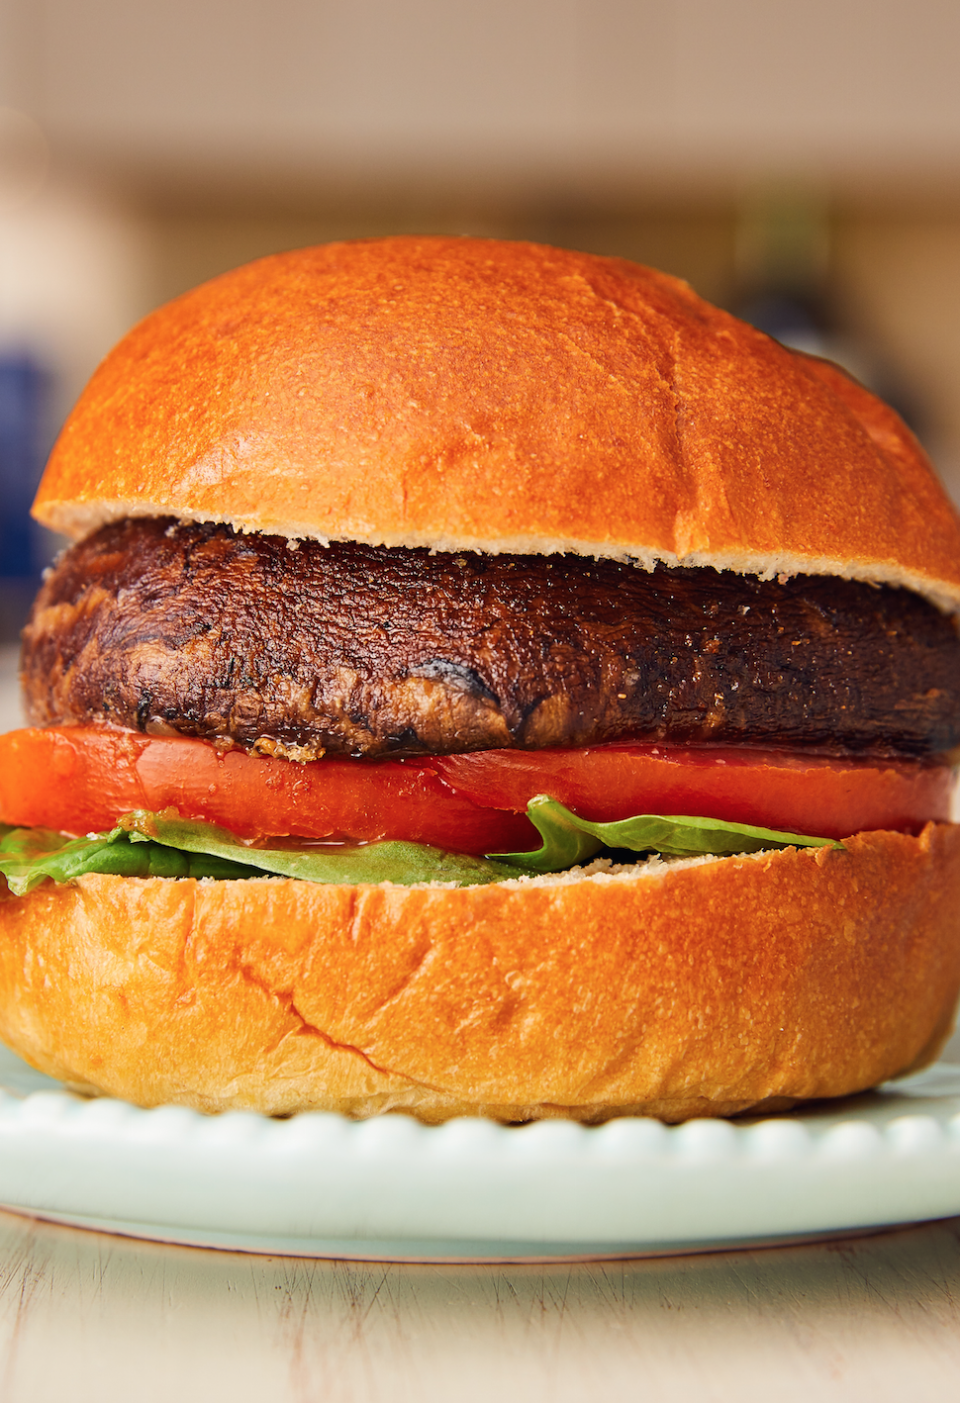 """<p>Portobellos are so thick and meaty, it's almost like you've got a beef patty in there.</p><p>Get the recipe from <a href=""""https://www.delish.com/cooking/a22487040/portobello-mushroom-burger/"""" rel=""""nofollow noopener"""" target=""""_blank"""" data-ylk=""""slk:Delish."""" class=""""link rapid-noclick-resp"""">Delish.</a></p>"""